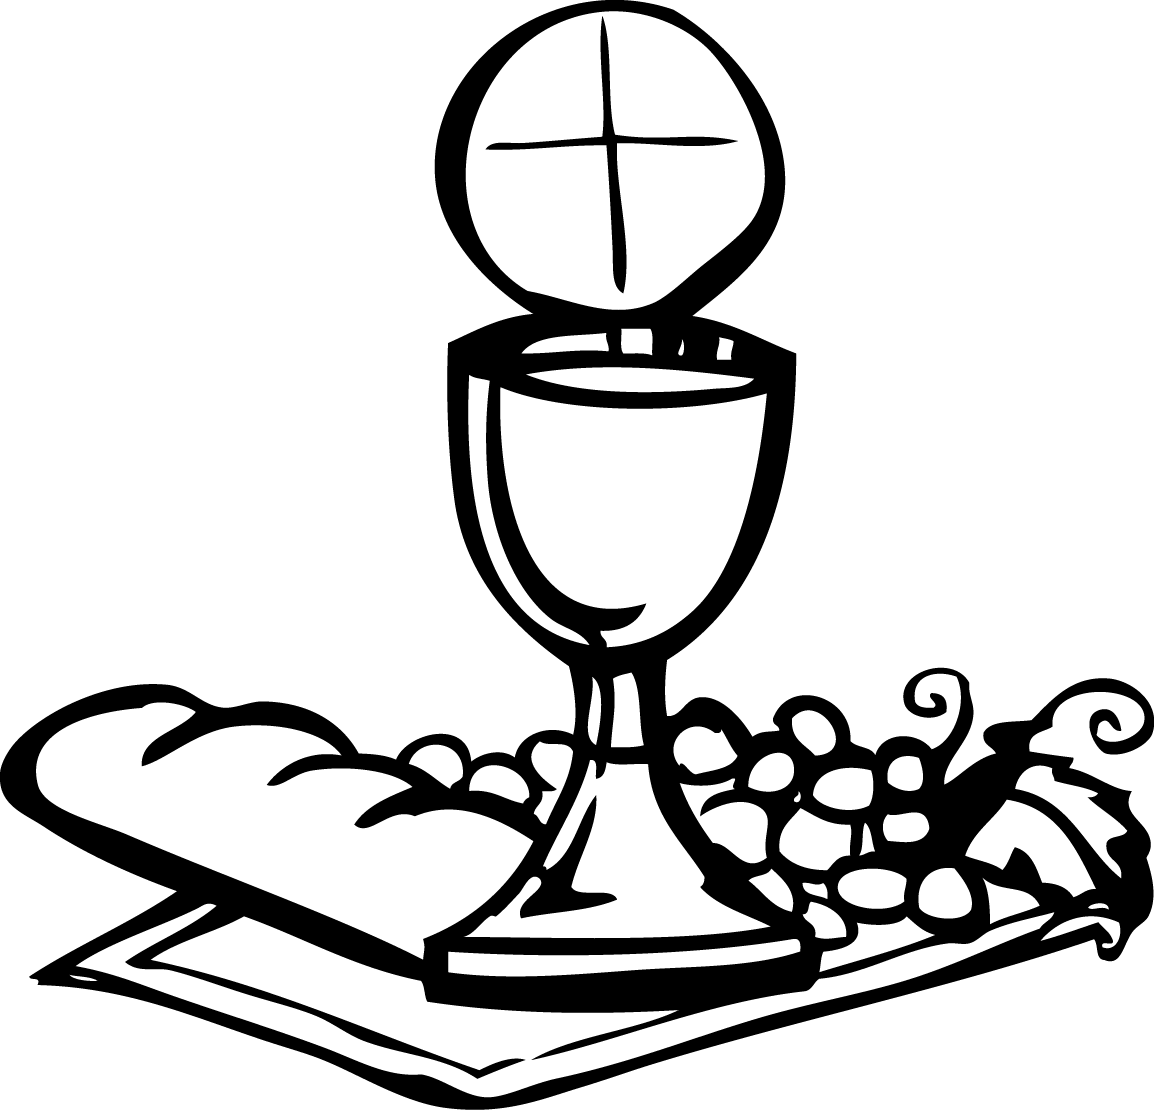 Grape clipart first communion. Chalice and the host